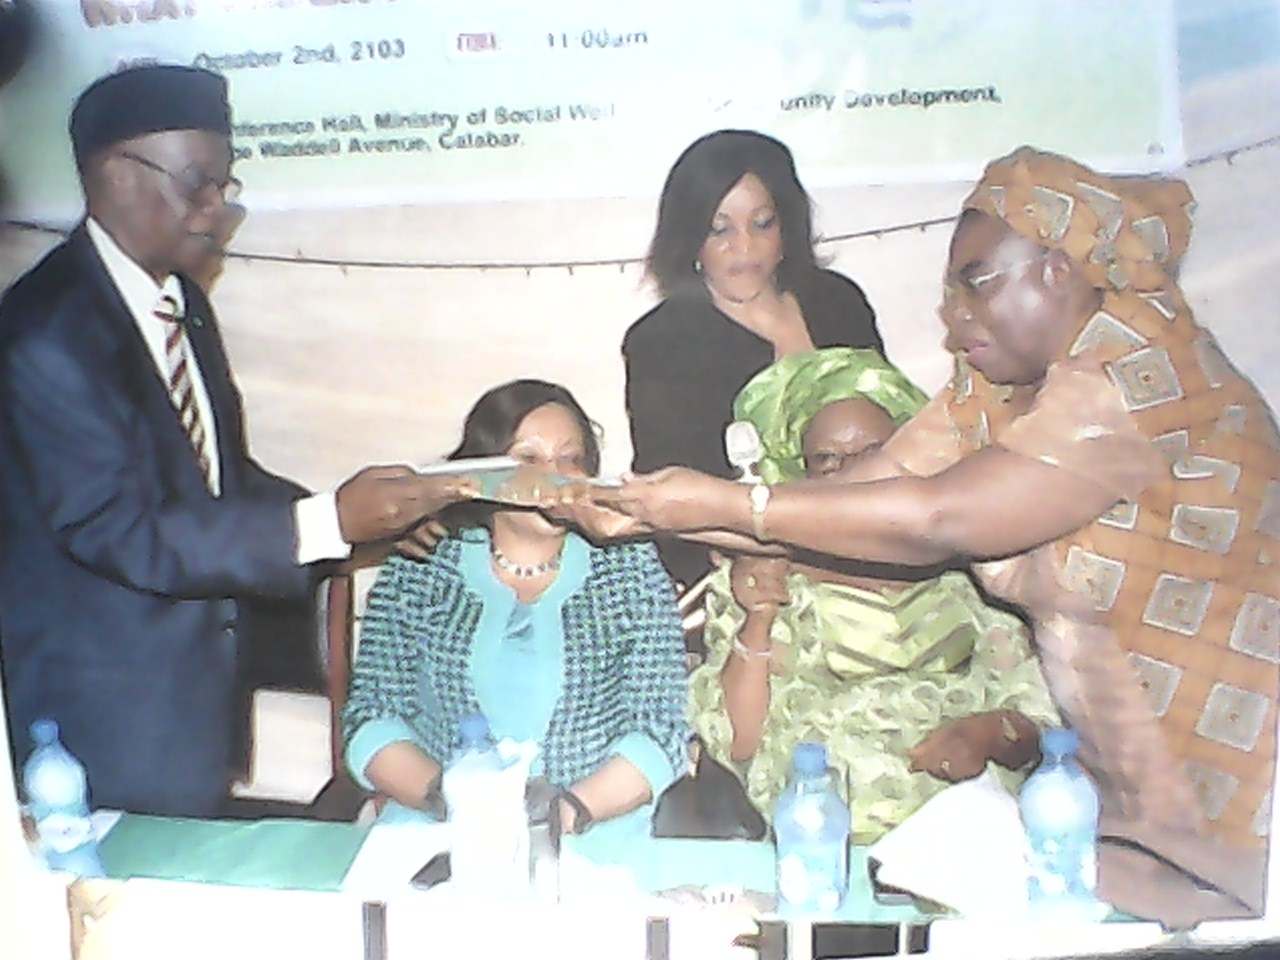 Permanent Secretary, Ministry of Social Welfare and Community Development giving the award to one of the recipients